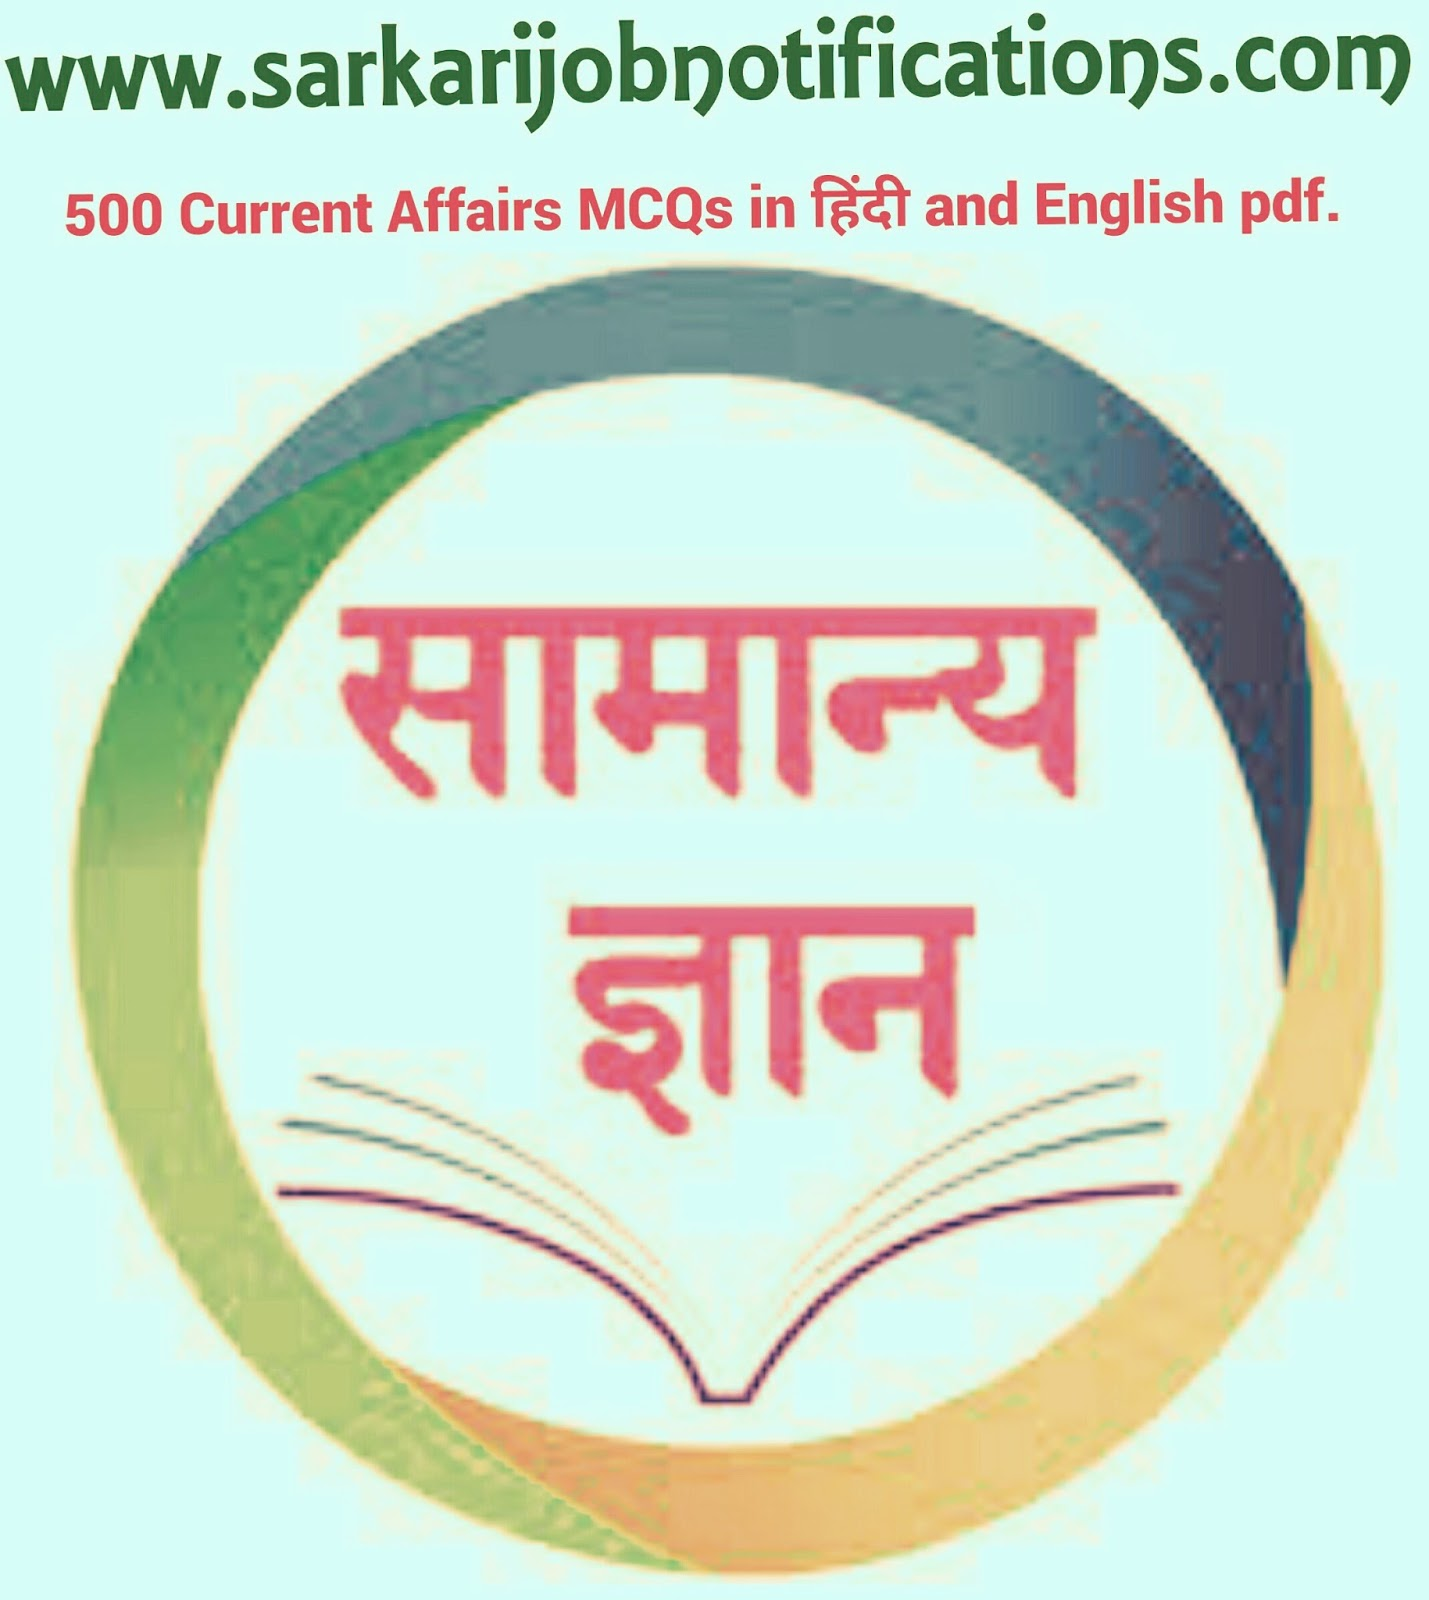 500 Current Affairs MCQs (from January to June 2017) in